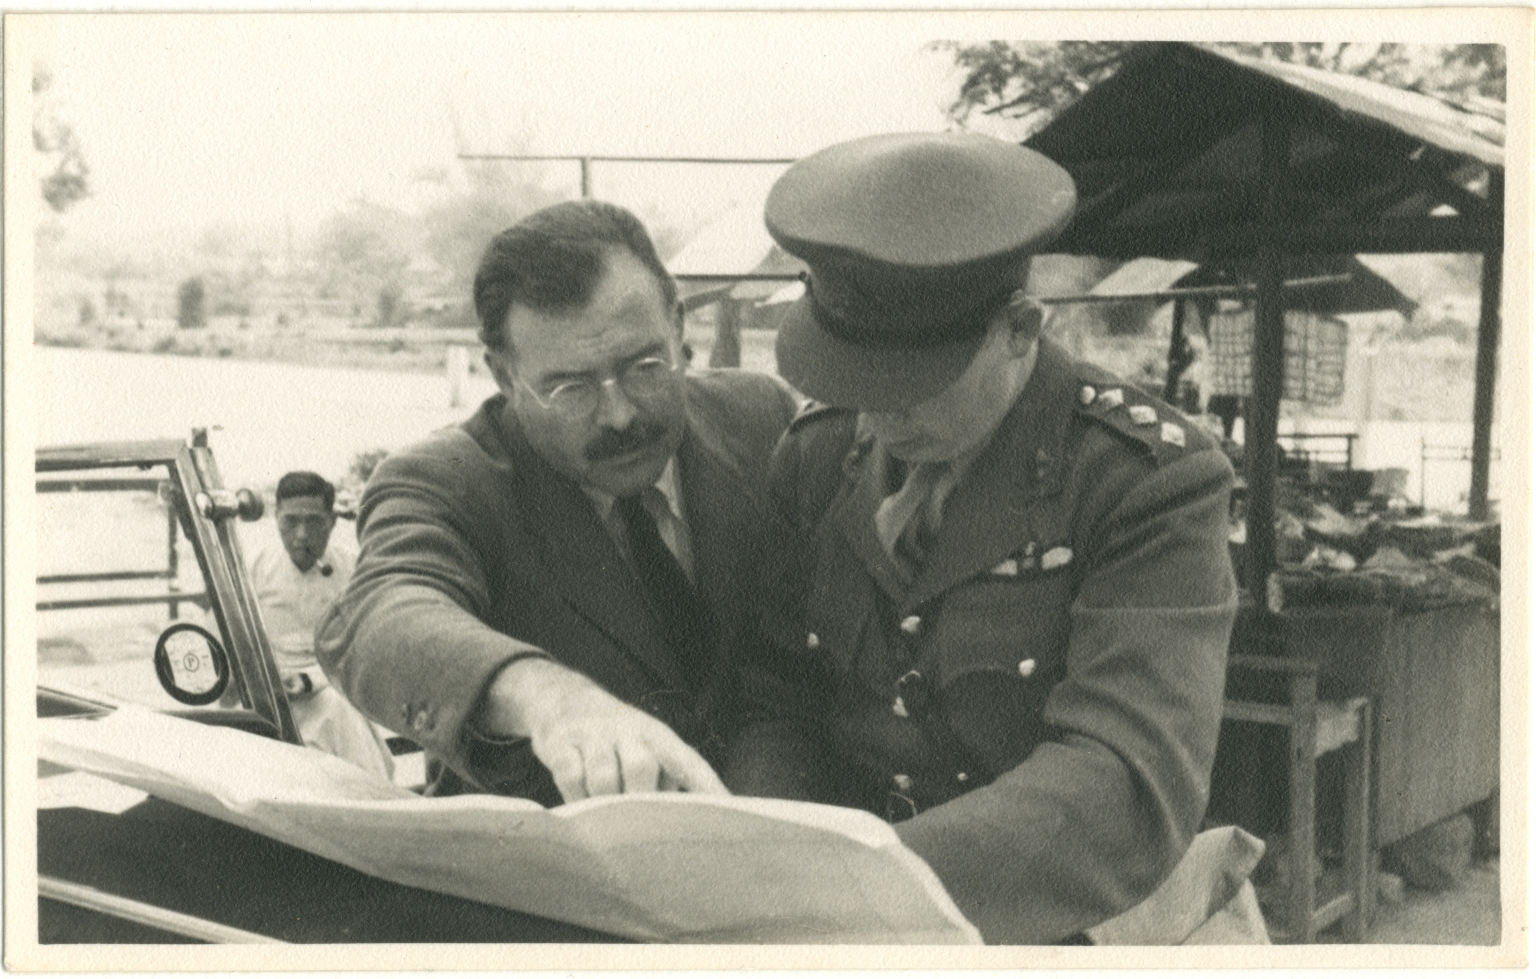 Hemingway Pointing to Document Held by Man in Army Uniform